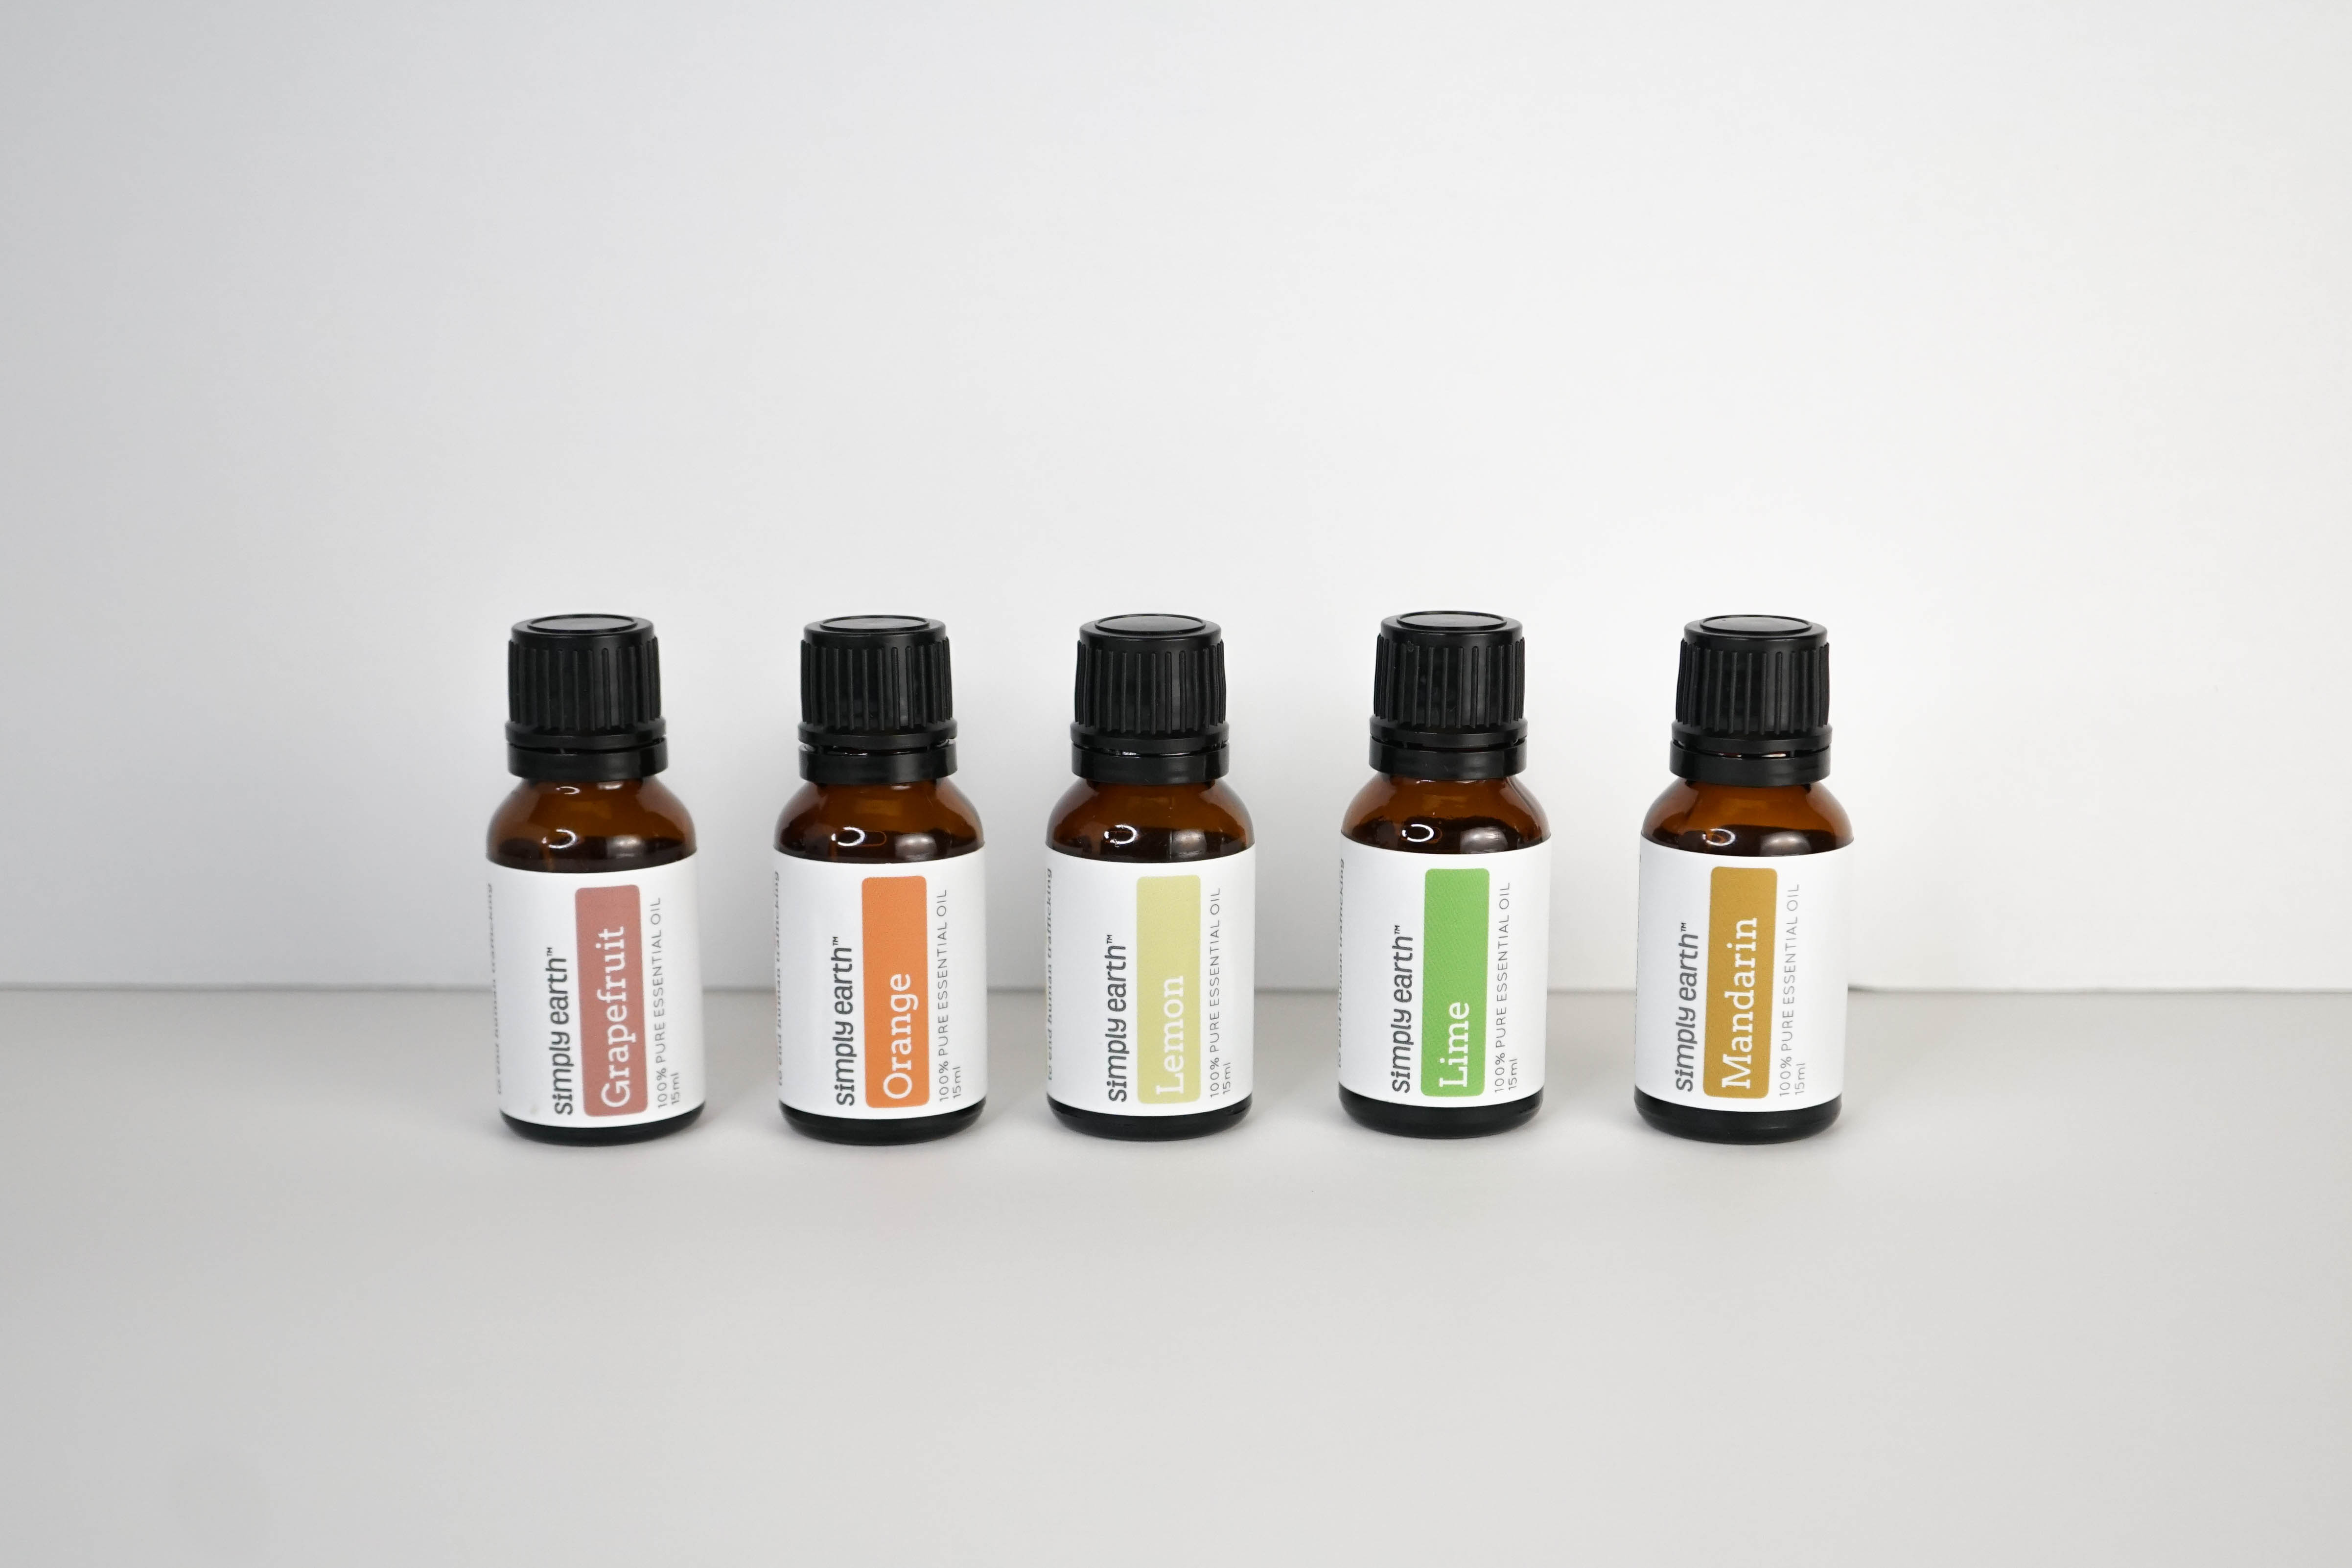 essential oils for dogs, essential oils, essential oil recipes, bay laurel Essential Oil, chamomile german Essential Oil, cinnamon leaf Essential Oil, geranium, ylan ylang Essential Oil, Are Essential Oils Safe for Pets, Essential Oil For Pets, Essential Oils For Animals